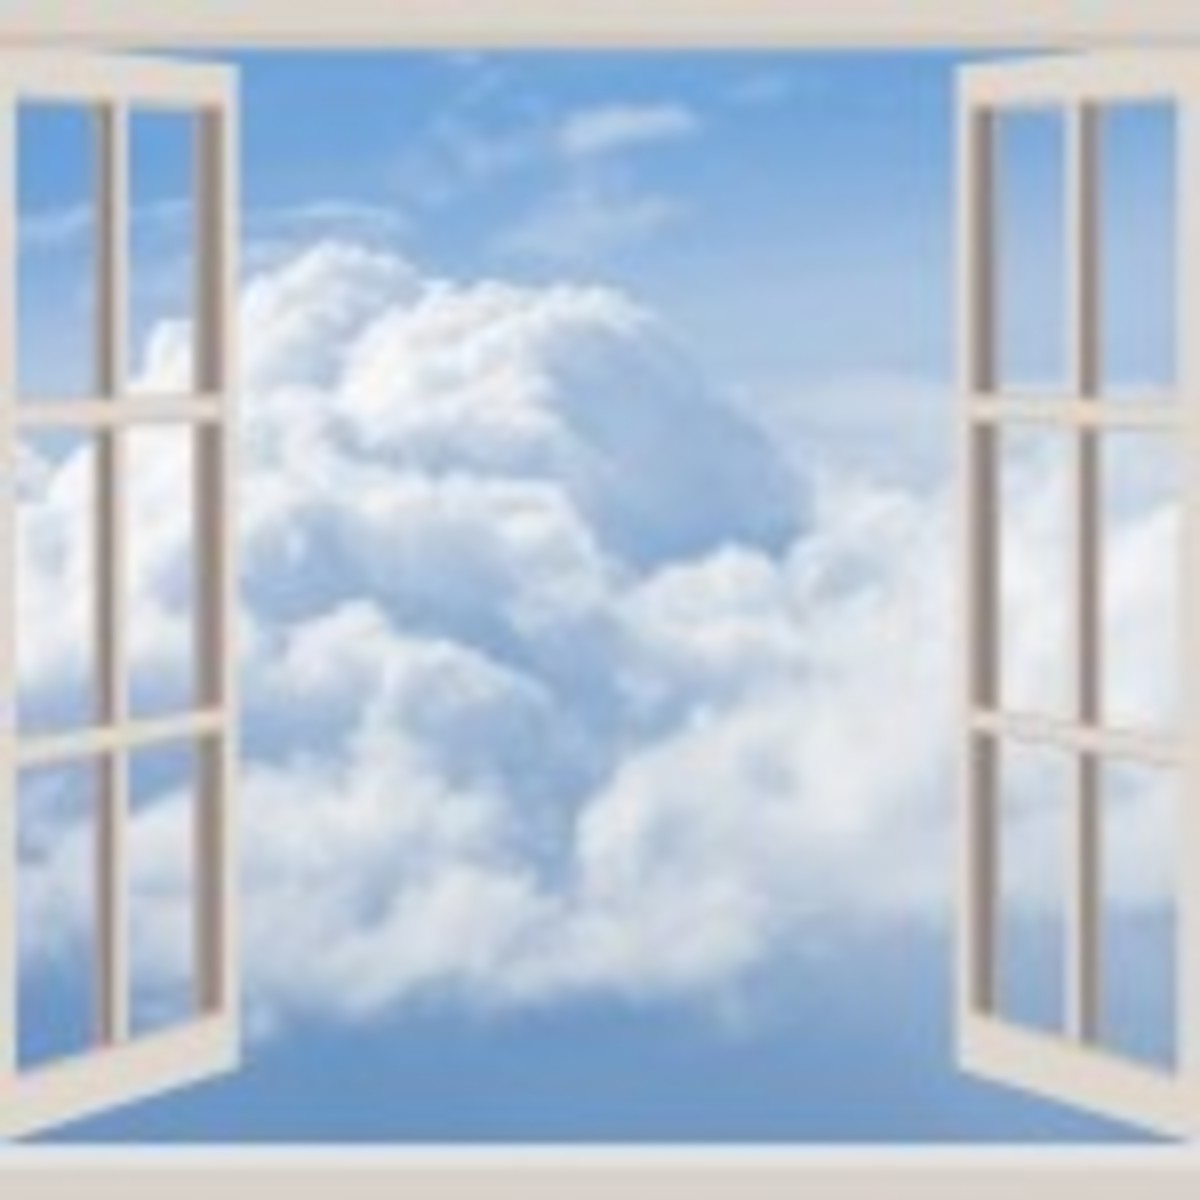 Clouds Through a Window - Google Images